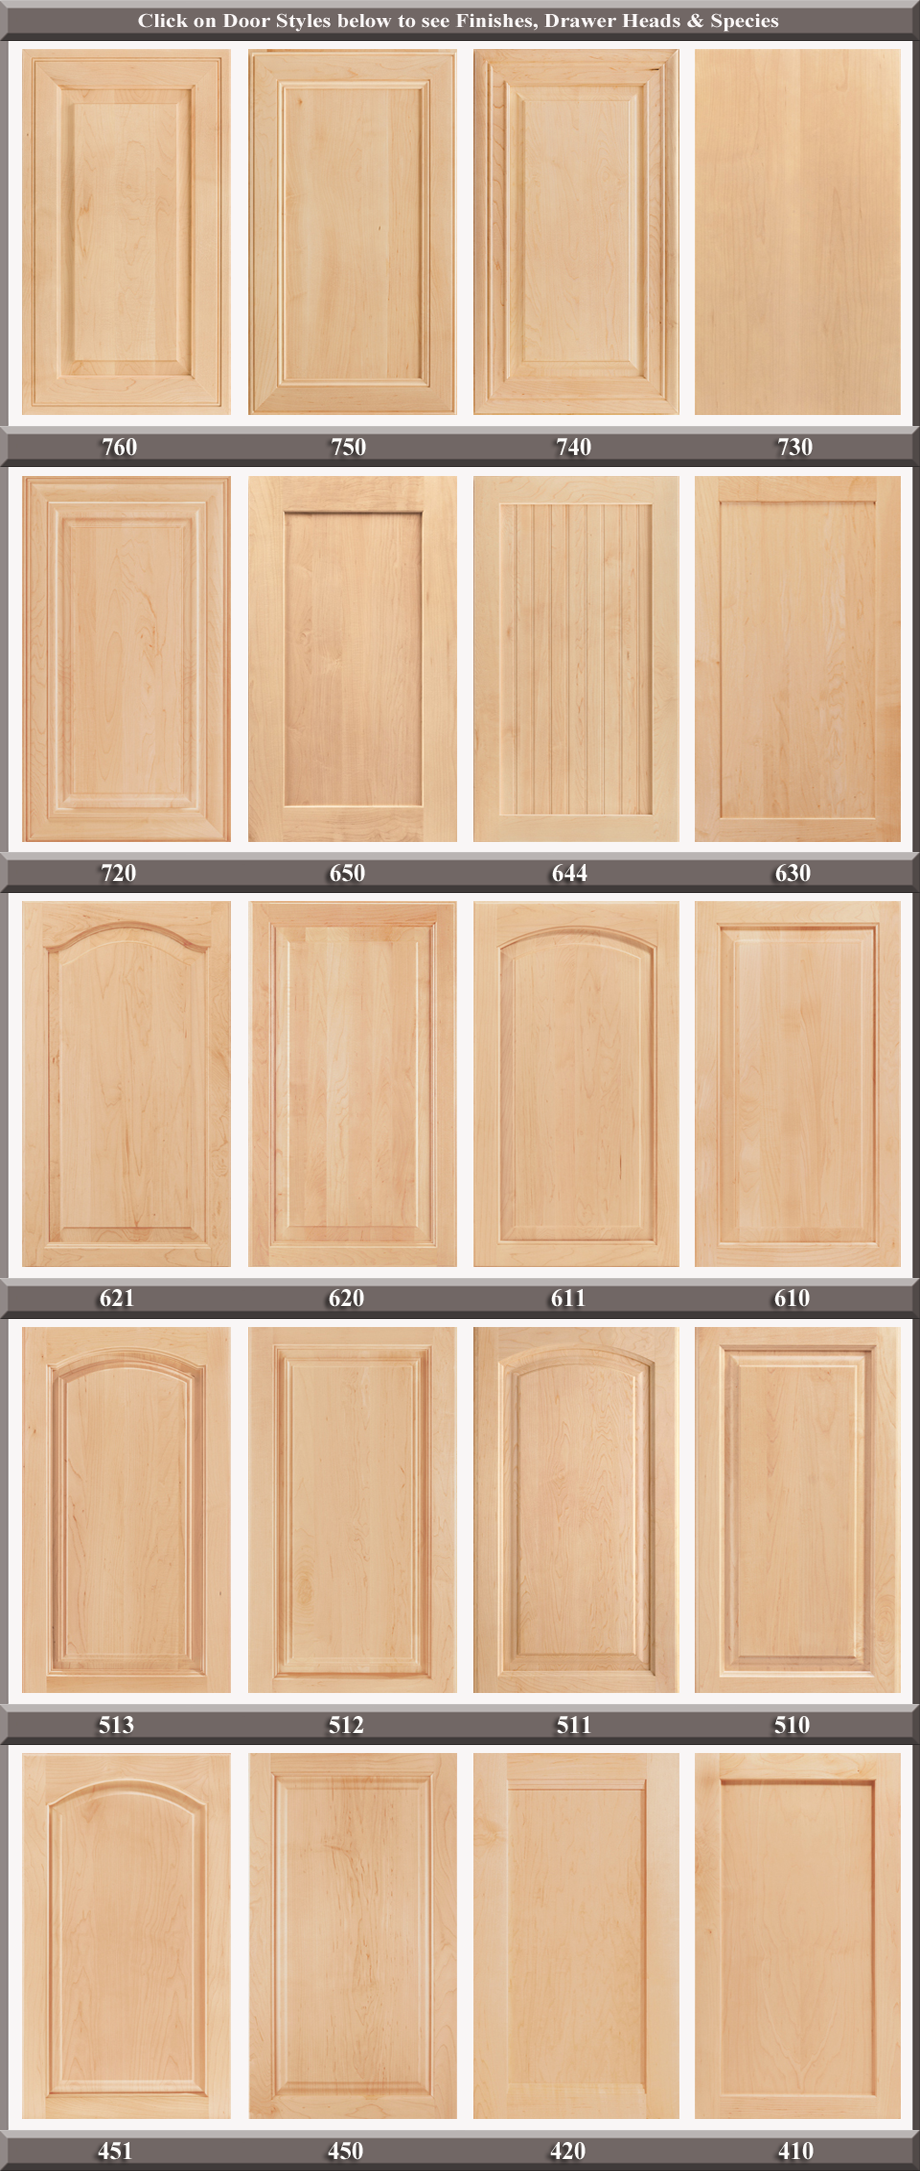 popular cabinet door styles & finishes | maryland kitchen cabinets